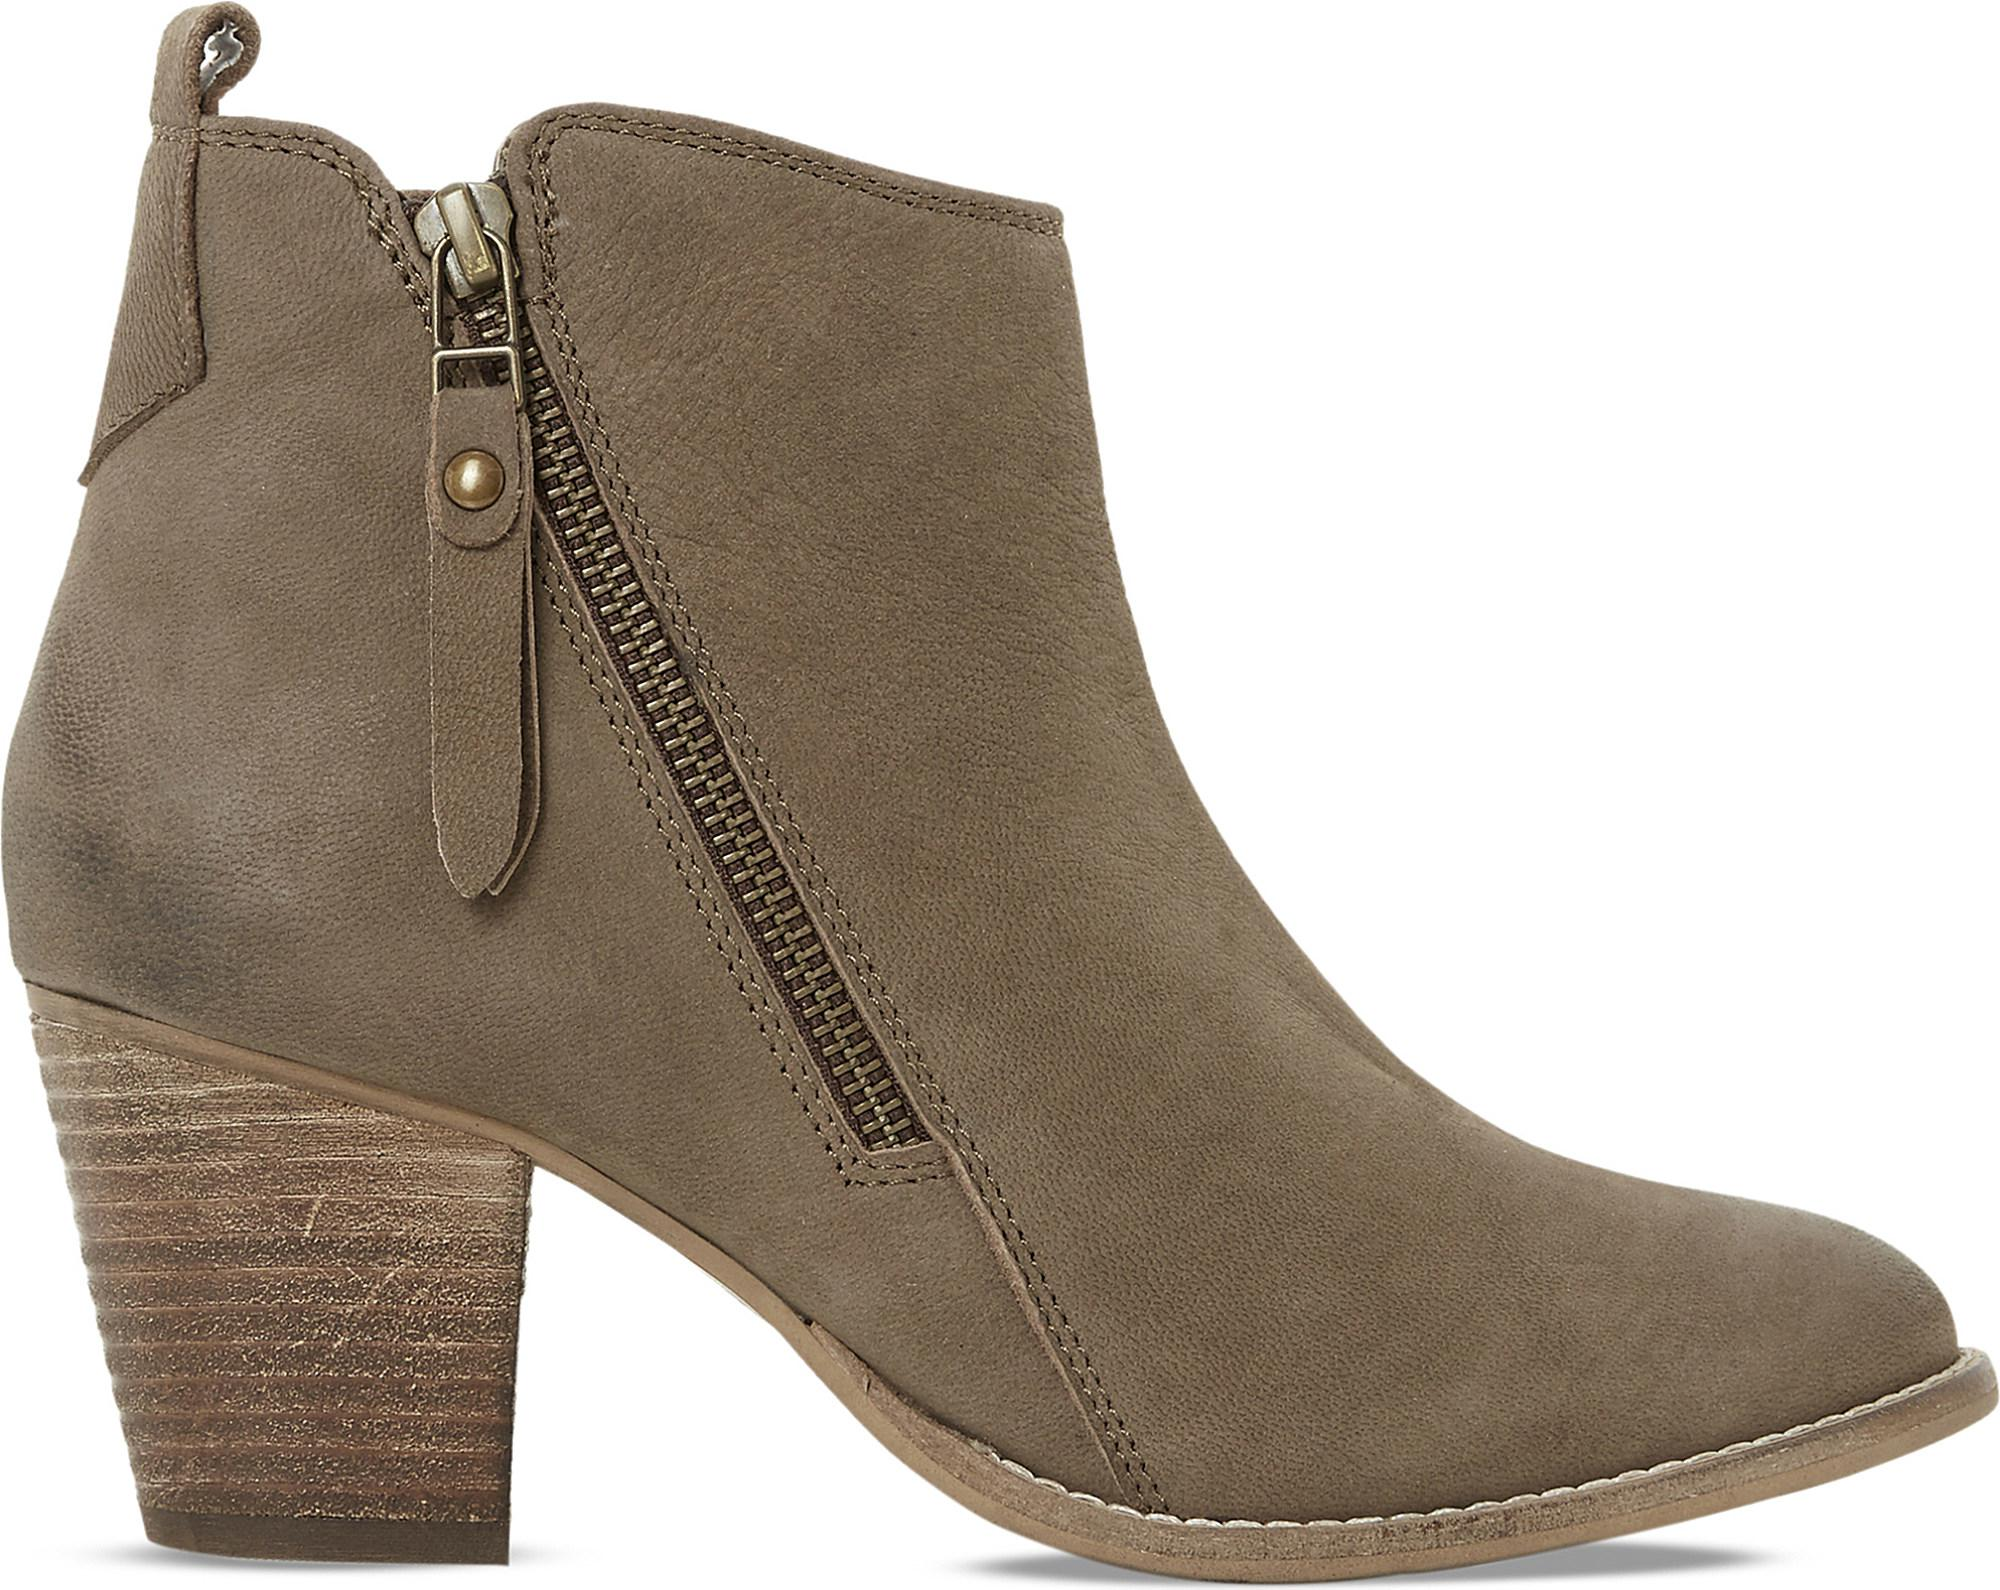 Dune Rubber Pontoon Leather Ankle Boots